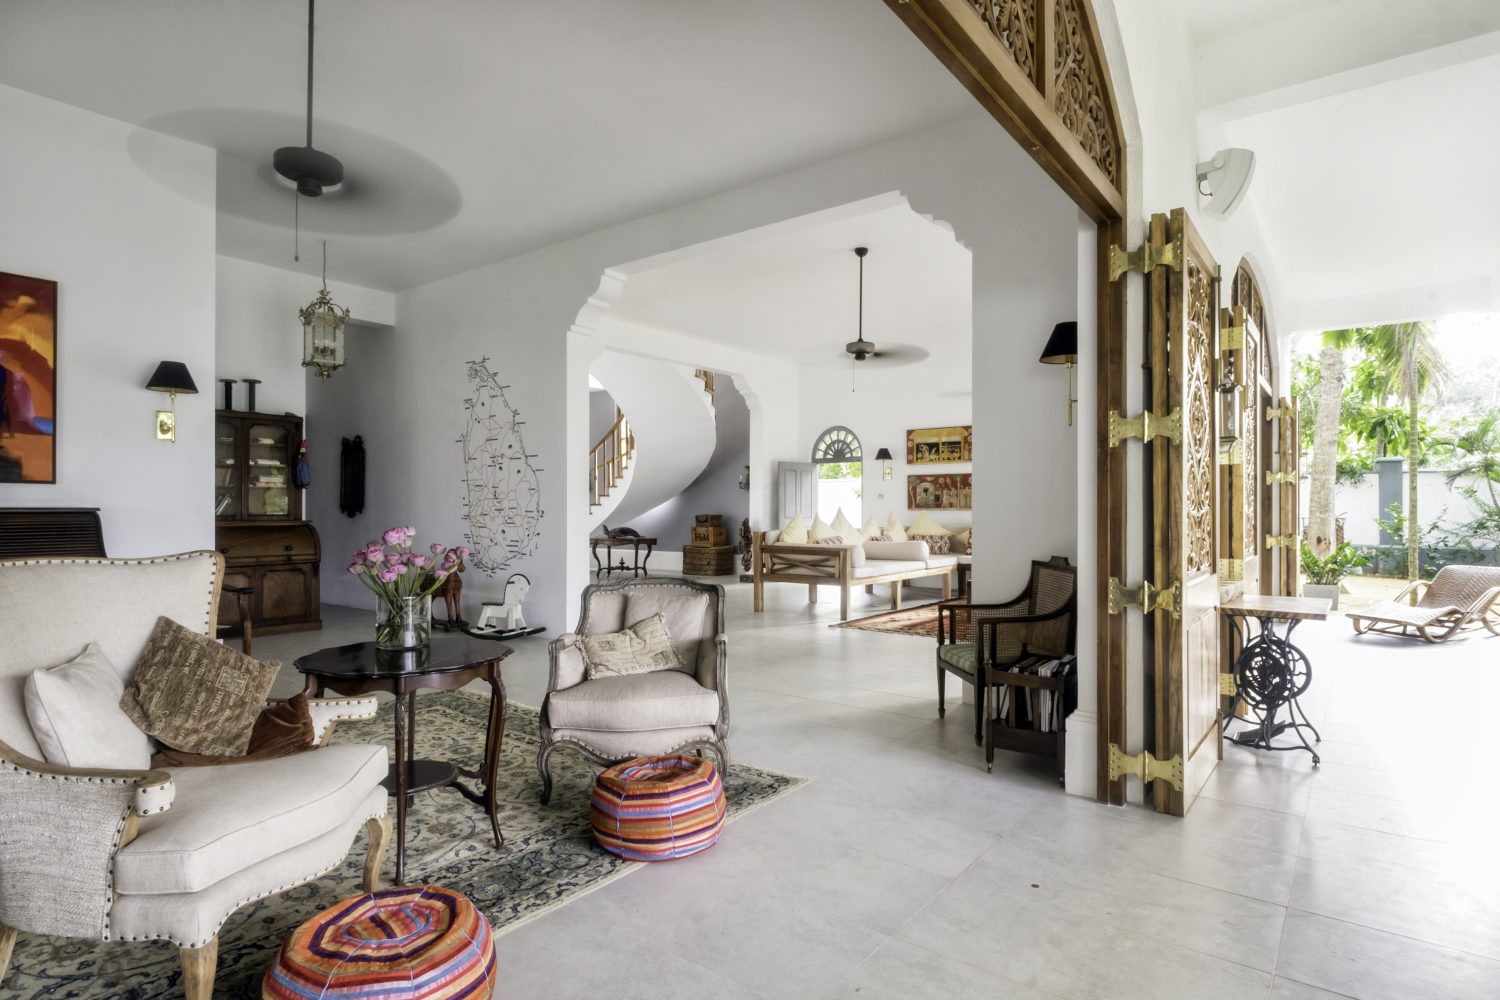 Escape to Sri Lanka at Eden Villas this Eid